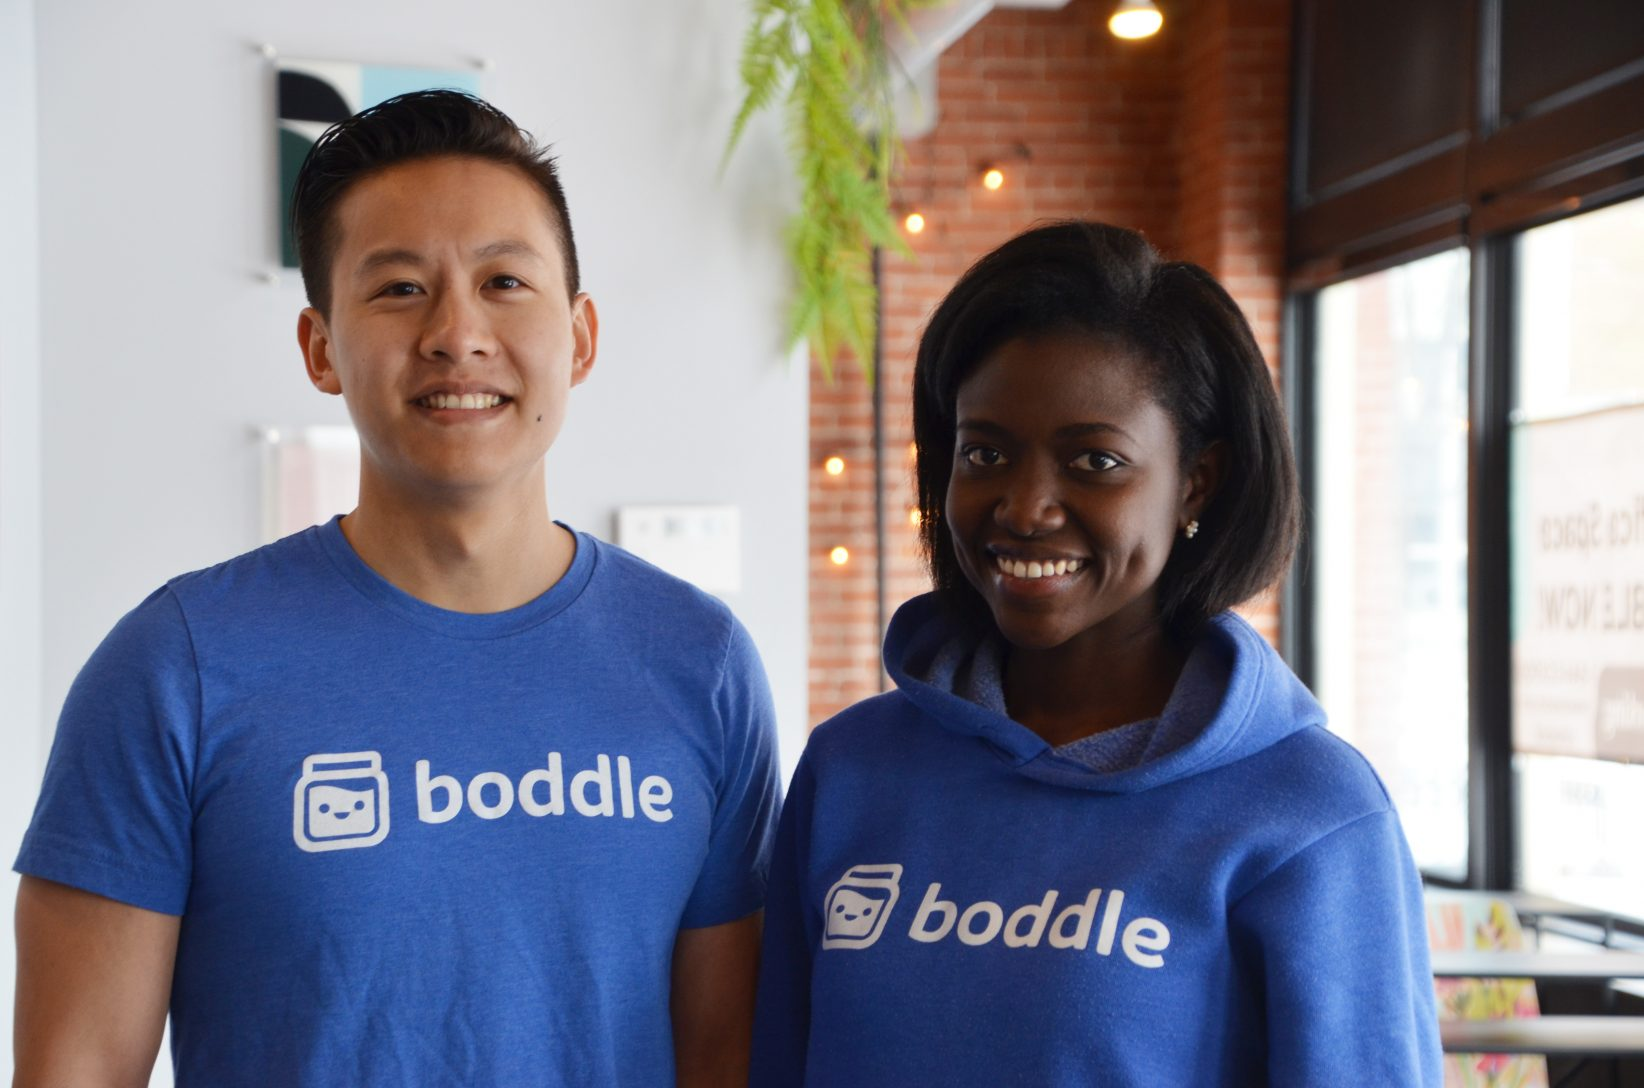 Boddle offers free access to its edtech platform as remote learning surges during COVID-19 school shutdown